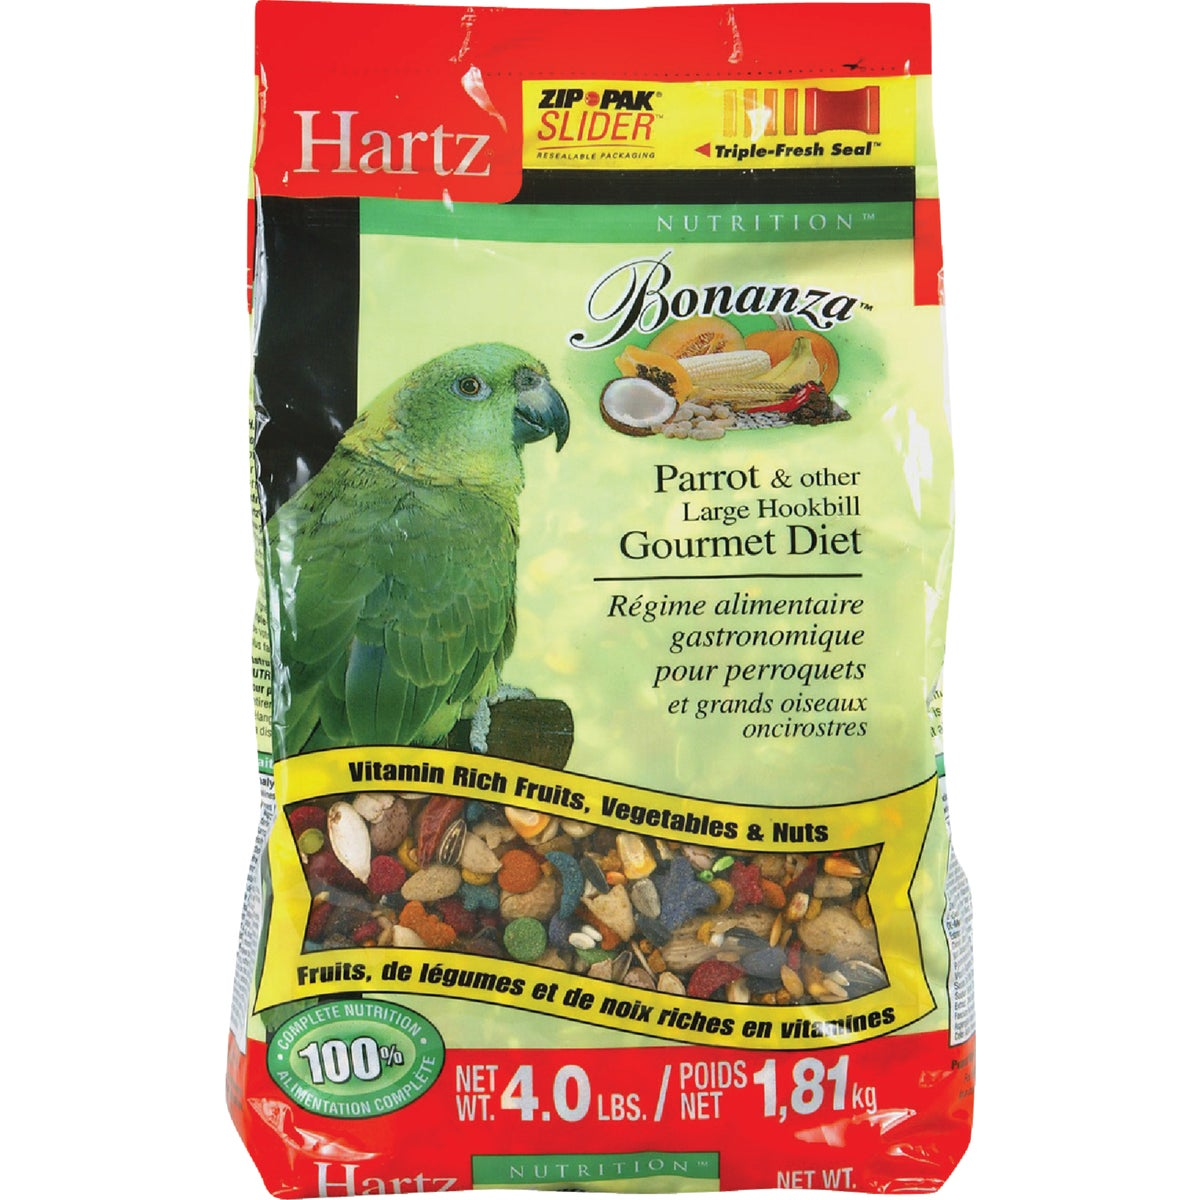 4LB PARROT FOOD - 3270097619 by Hartz Mountain Corp